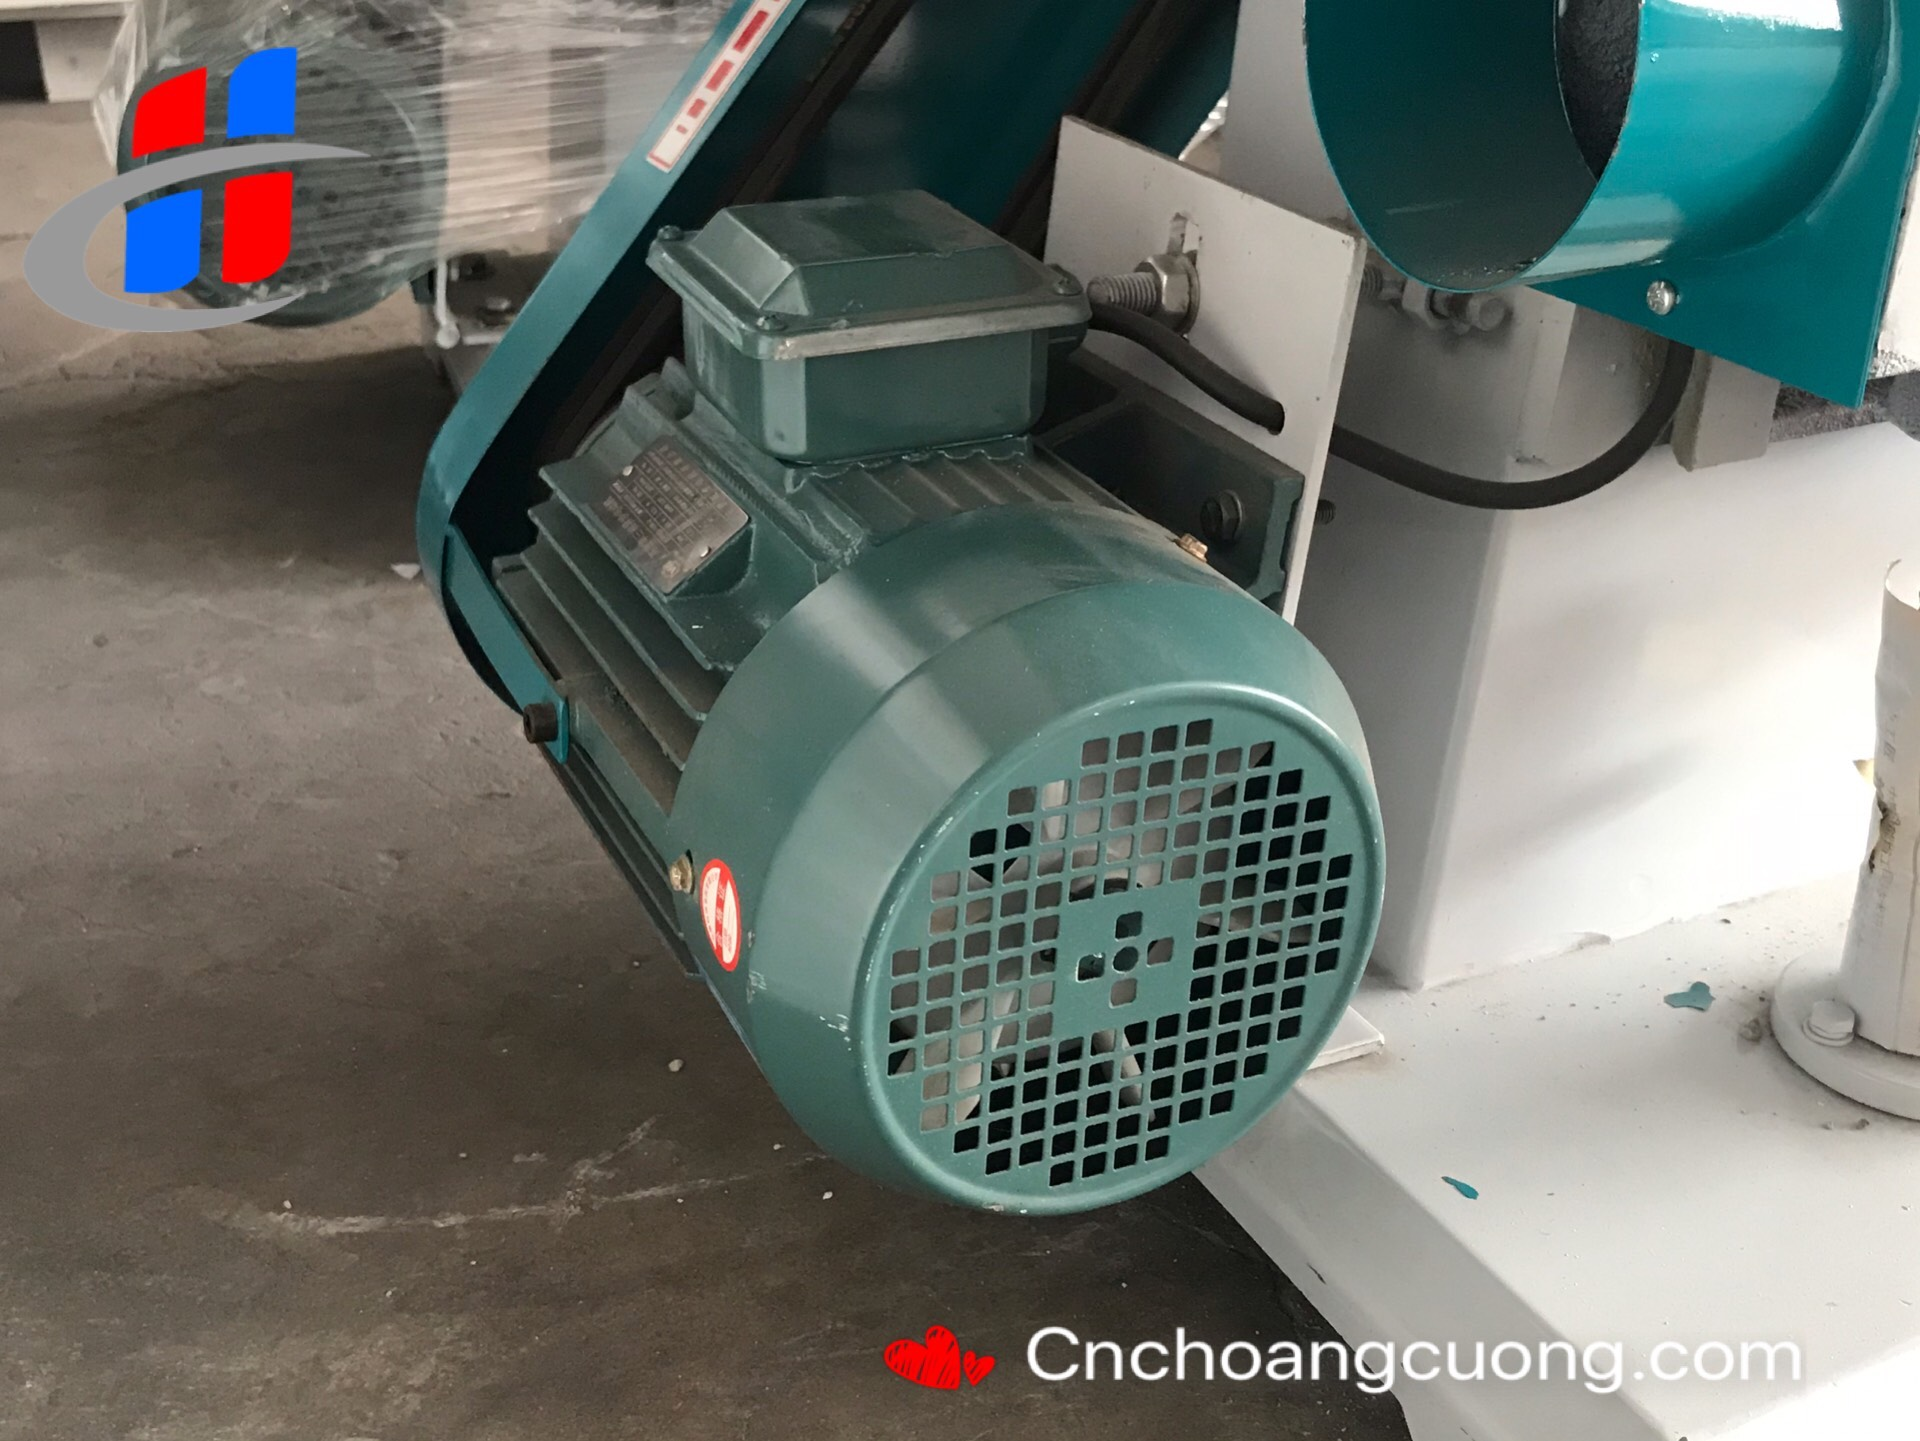 https://cnchoangcuong.com/?post_type=product&p=2083&preview=true